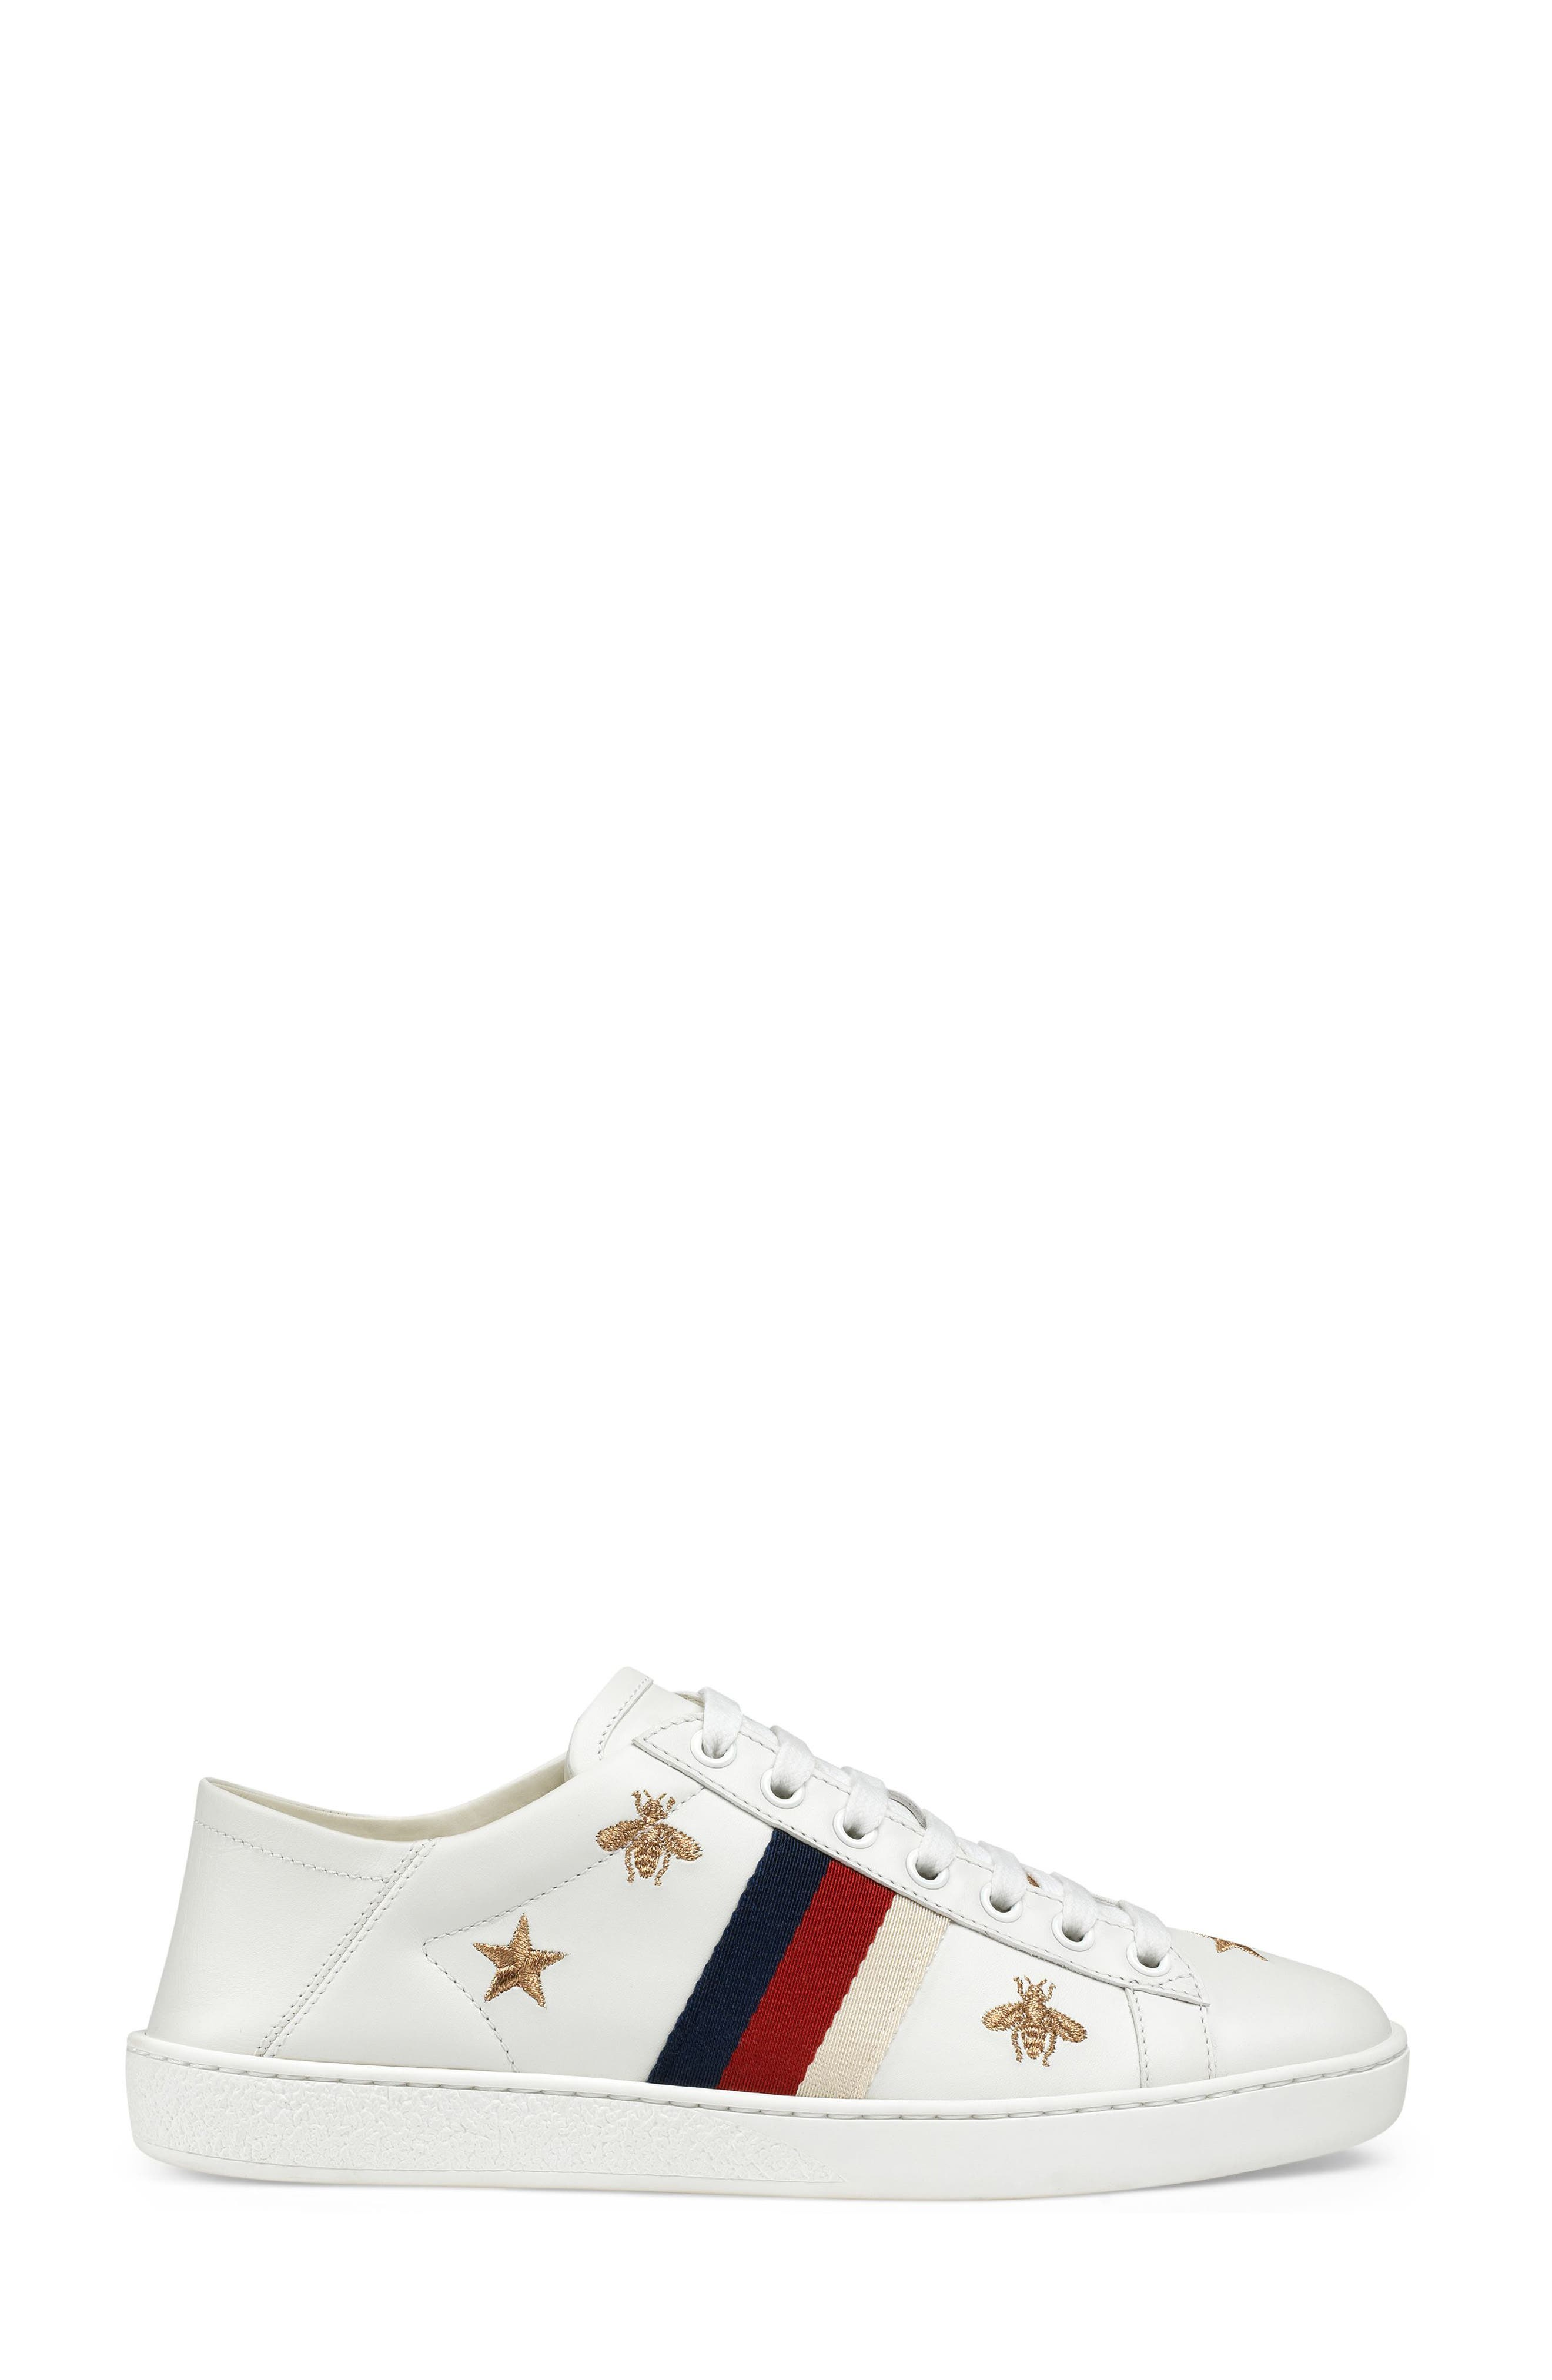 Gucci New Ace Convertible Heel Sneaker (Women)